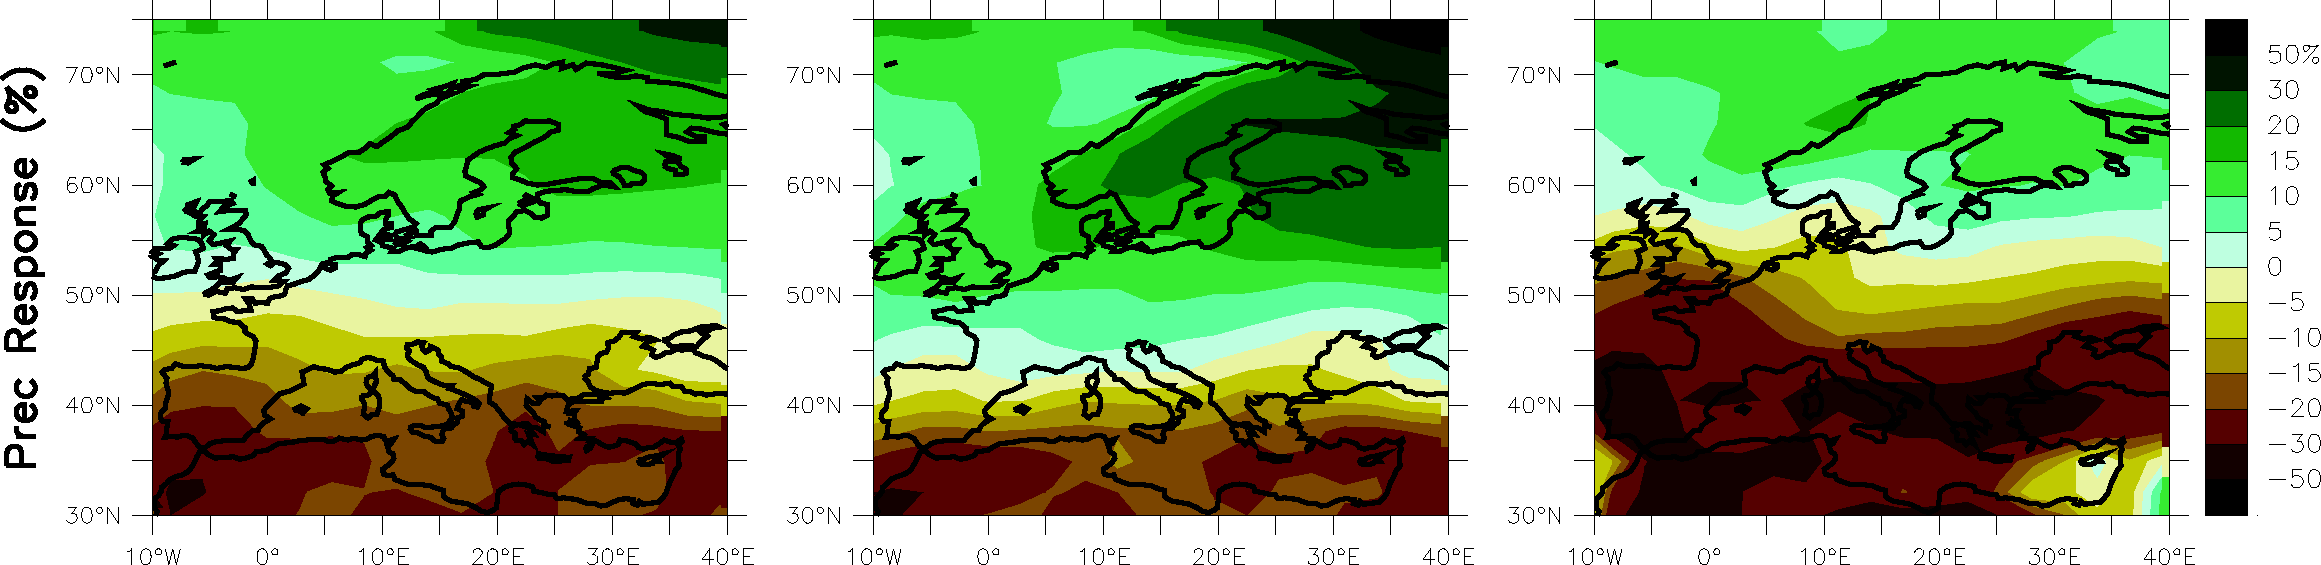 Modelled precipitation change between 1980-1999 and 2080-2099